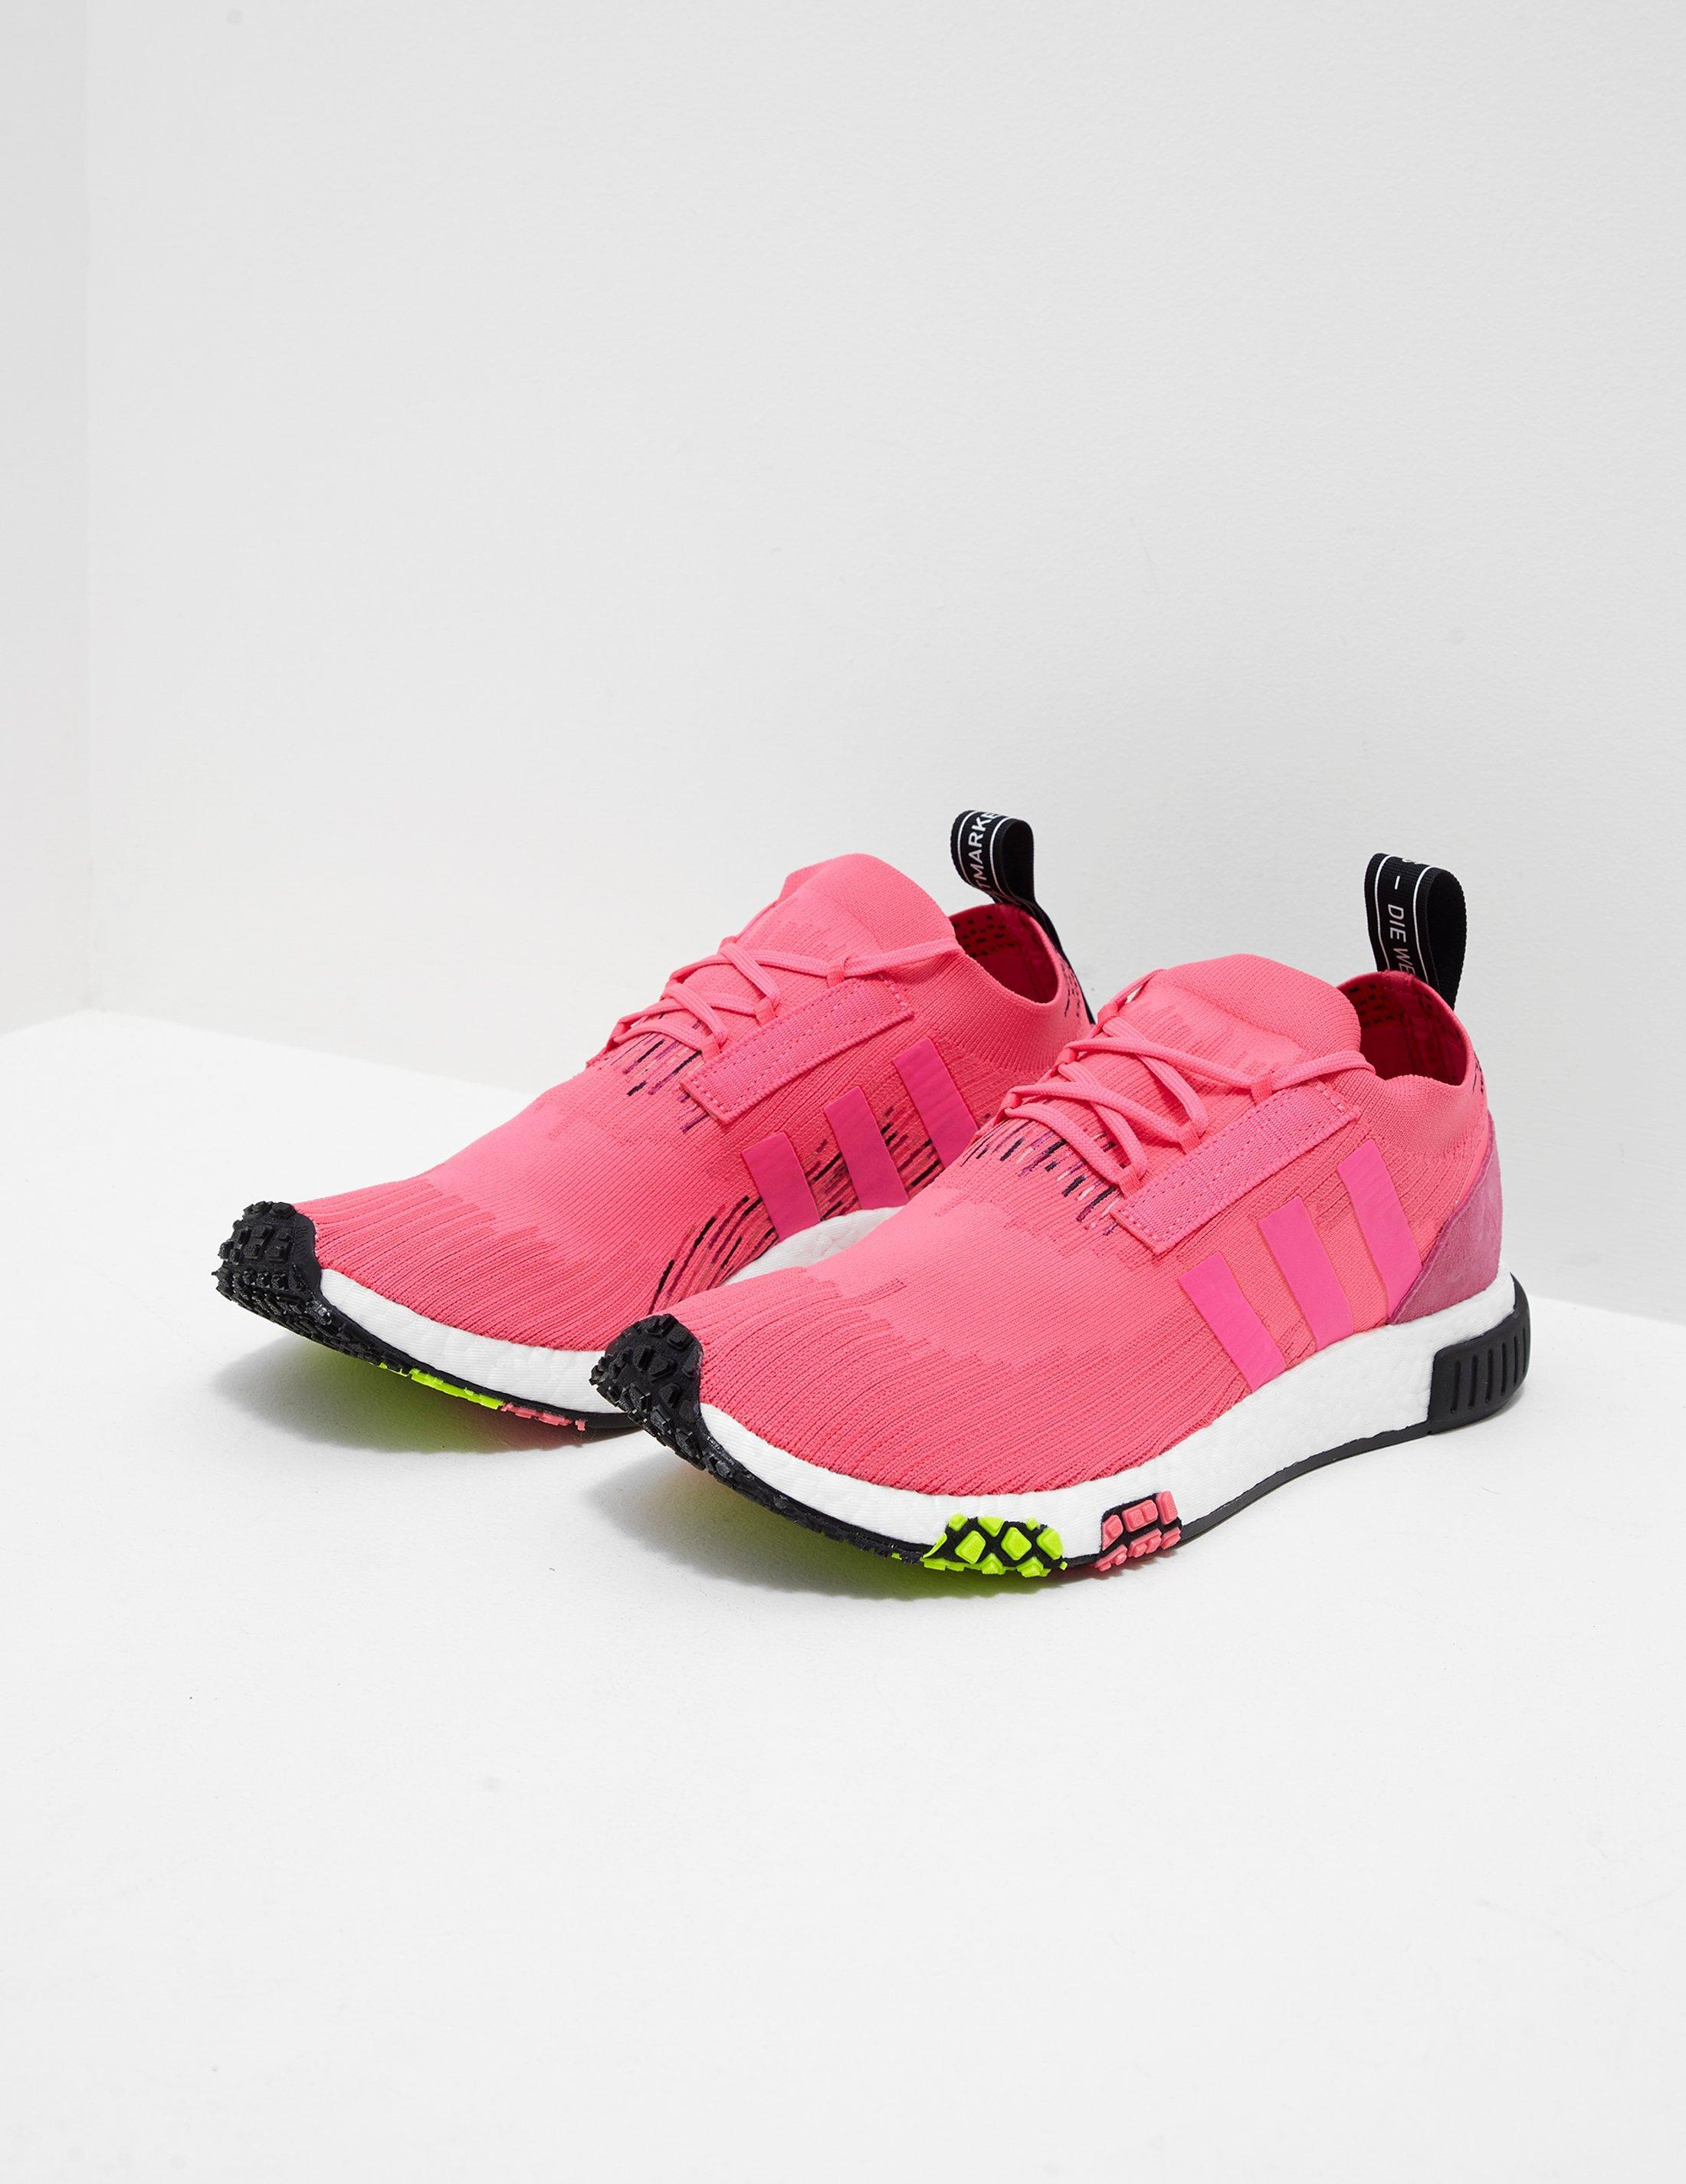 5edee5806f3a Lyst - adidas Originals Nmd Racer Primeknit Pink in Pink for Men ...